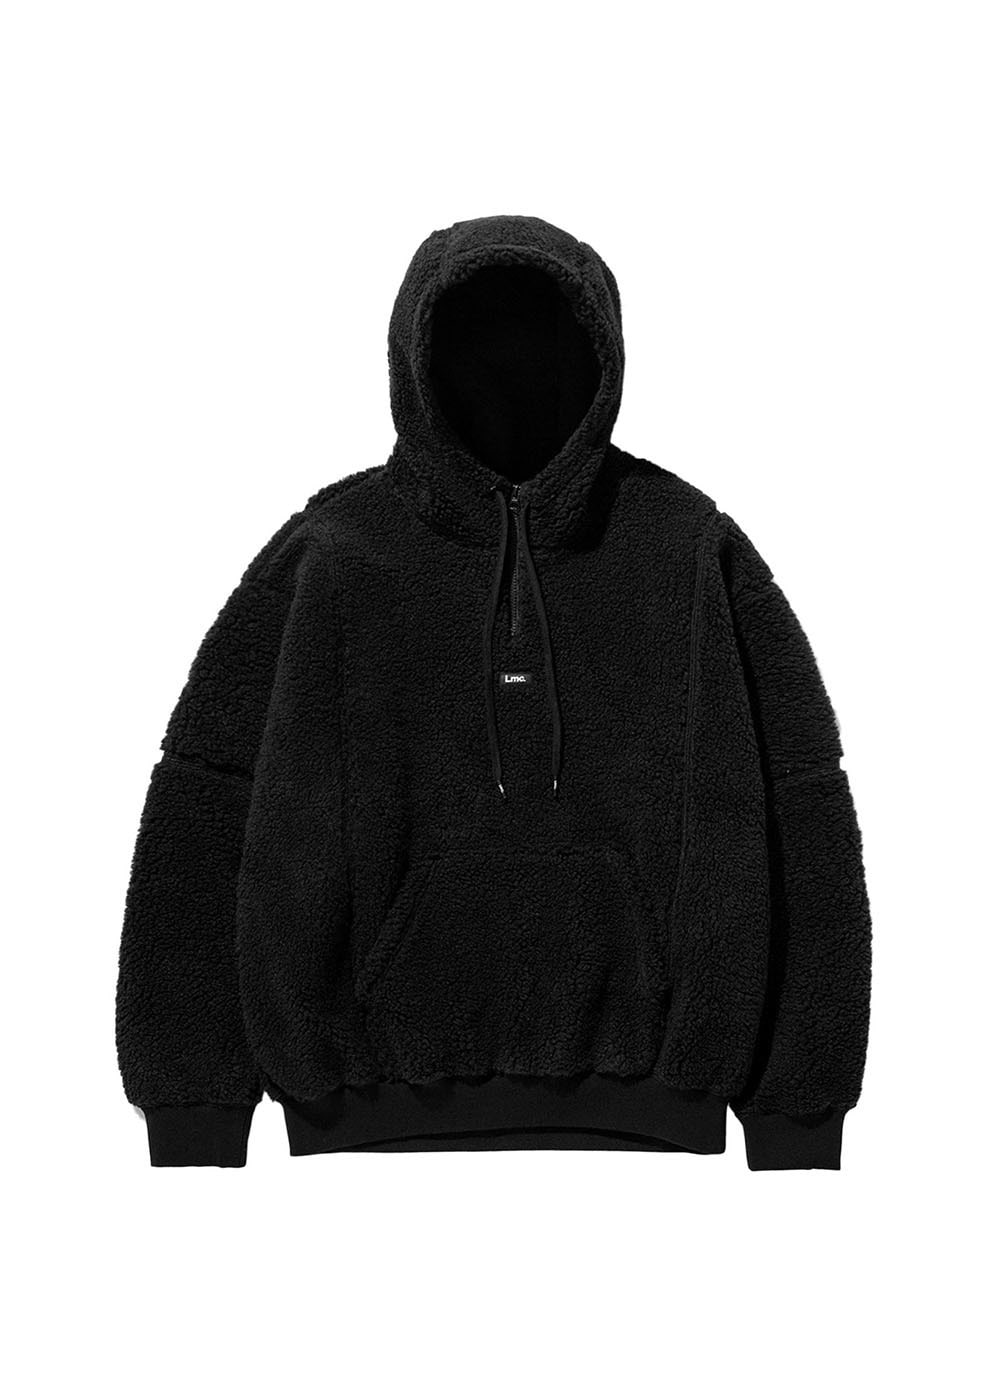 LMC BOA FLEECE QUARTER ZIP HOODIE black